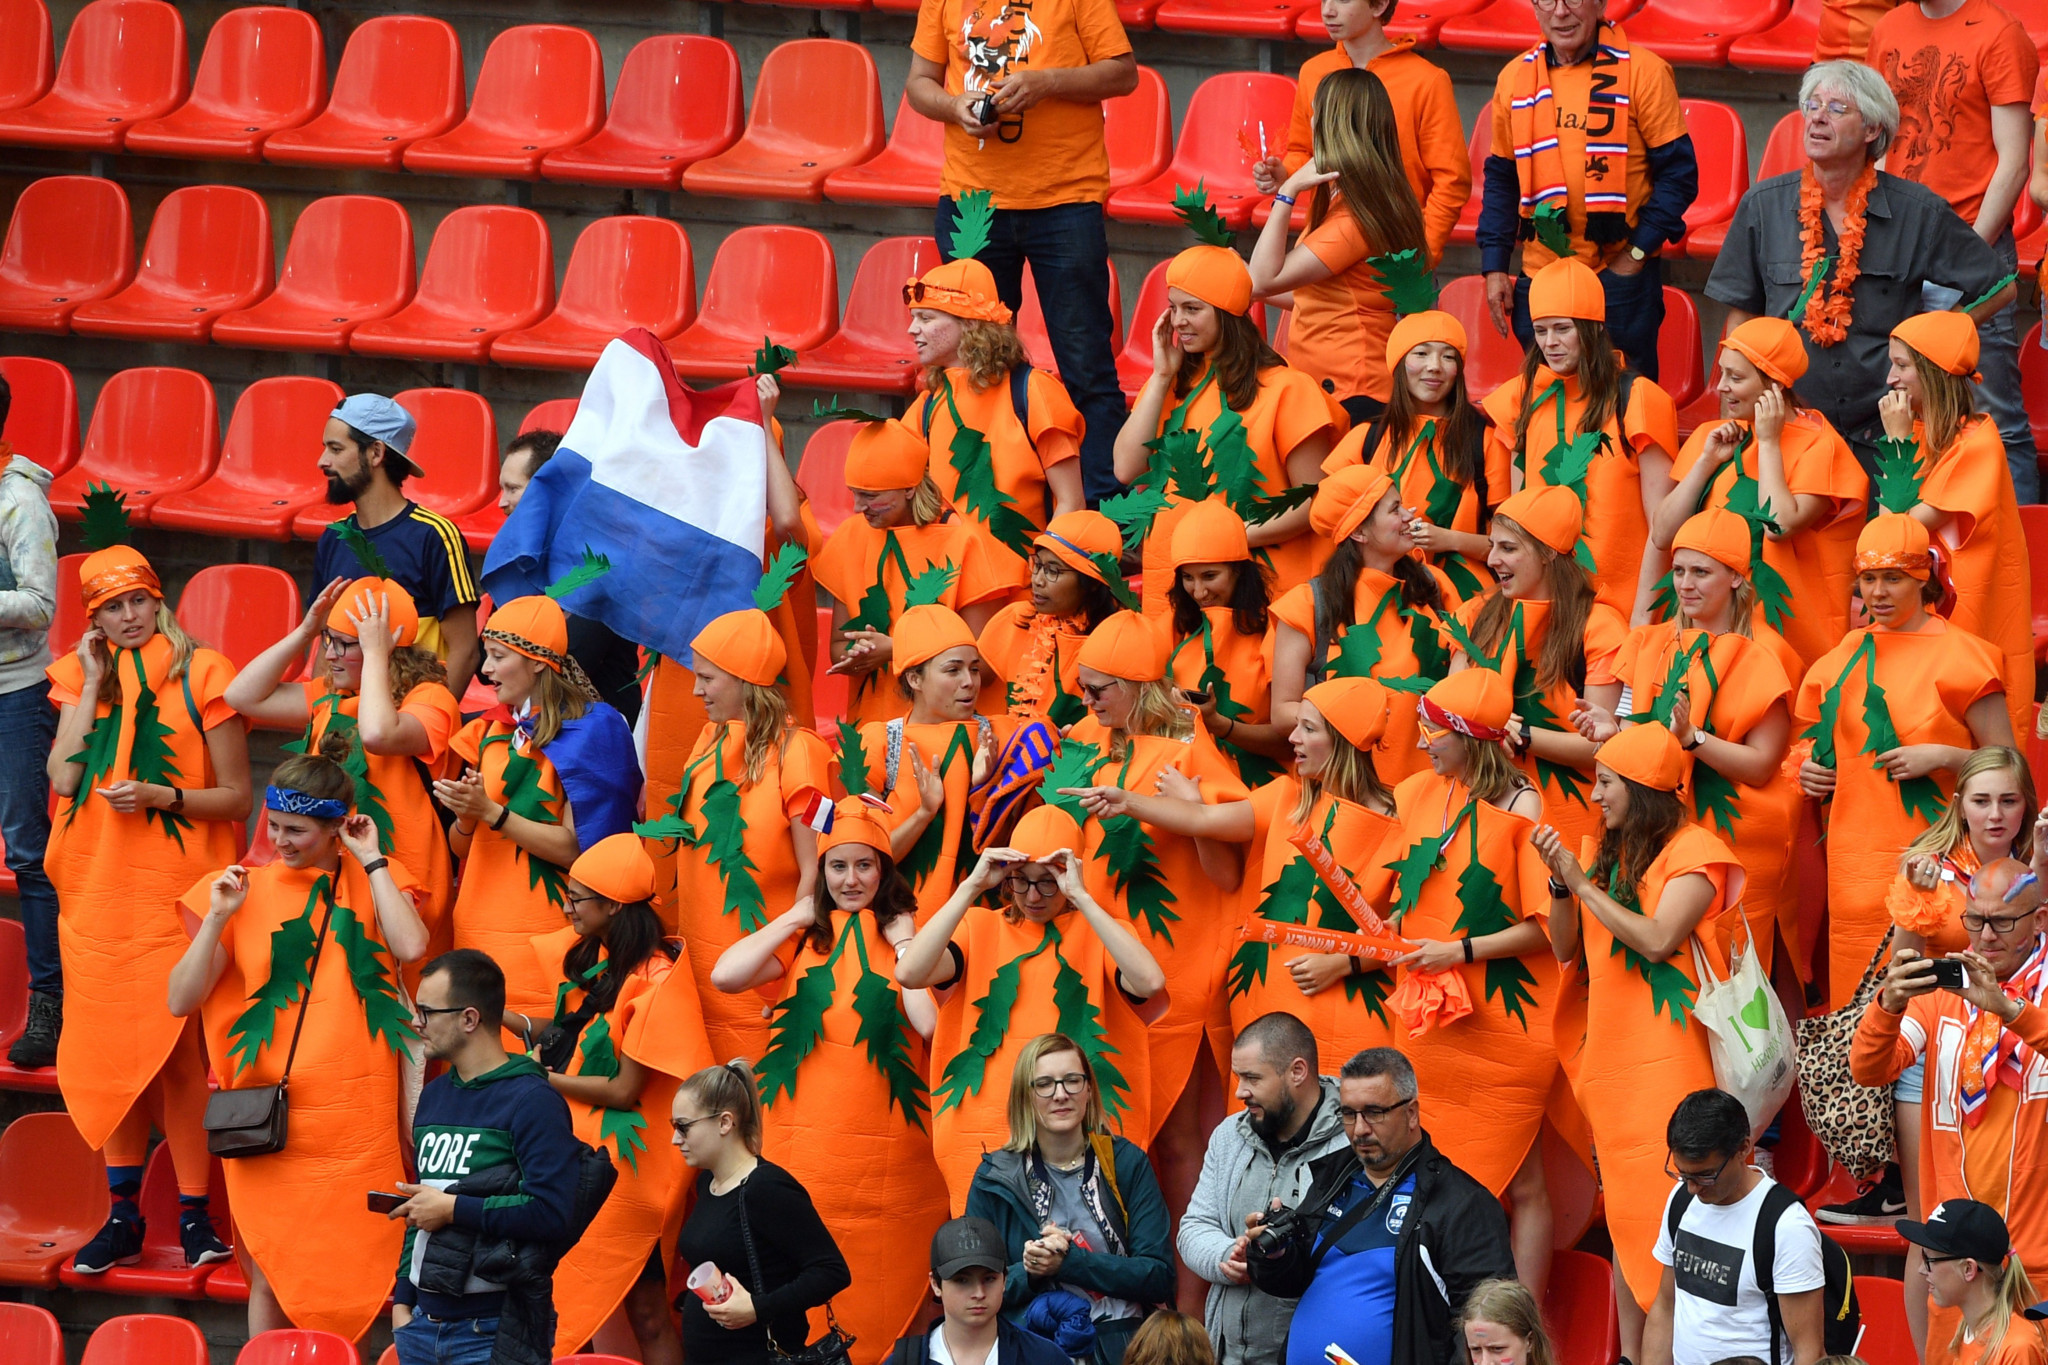 Netherlands supporters celebrate victory over Cameroon in Valenciennes